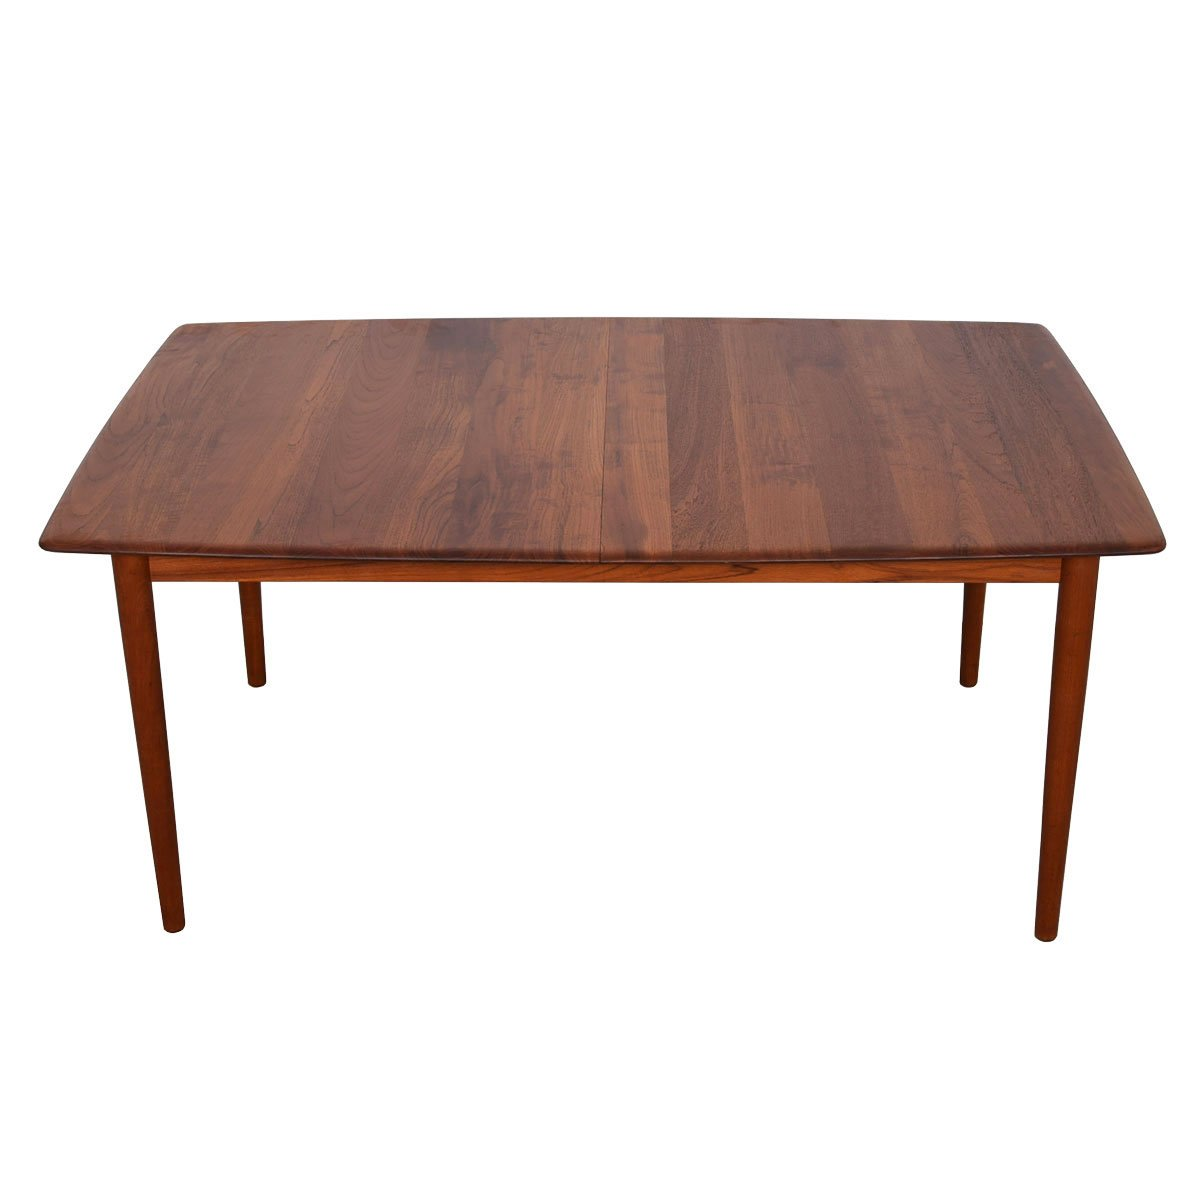 Peter Hvidt Smooth-Edge Solid Teak Expanding Dining Table.